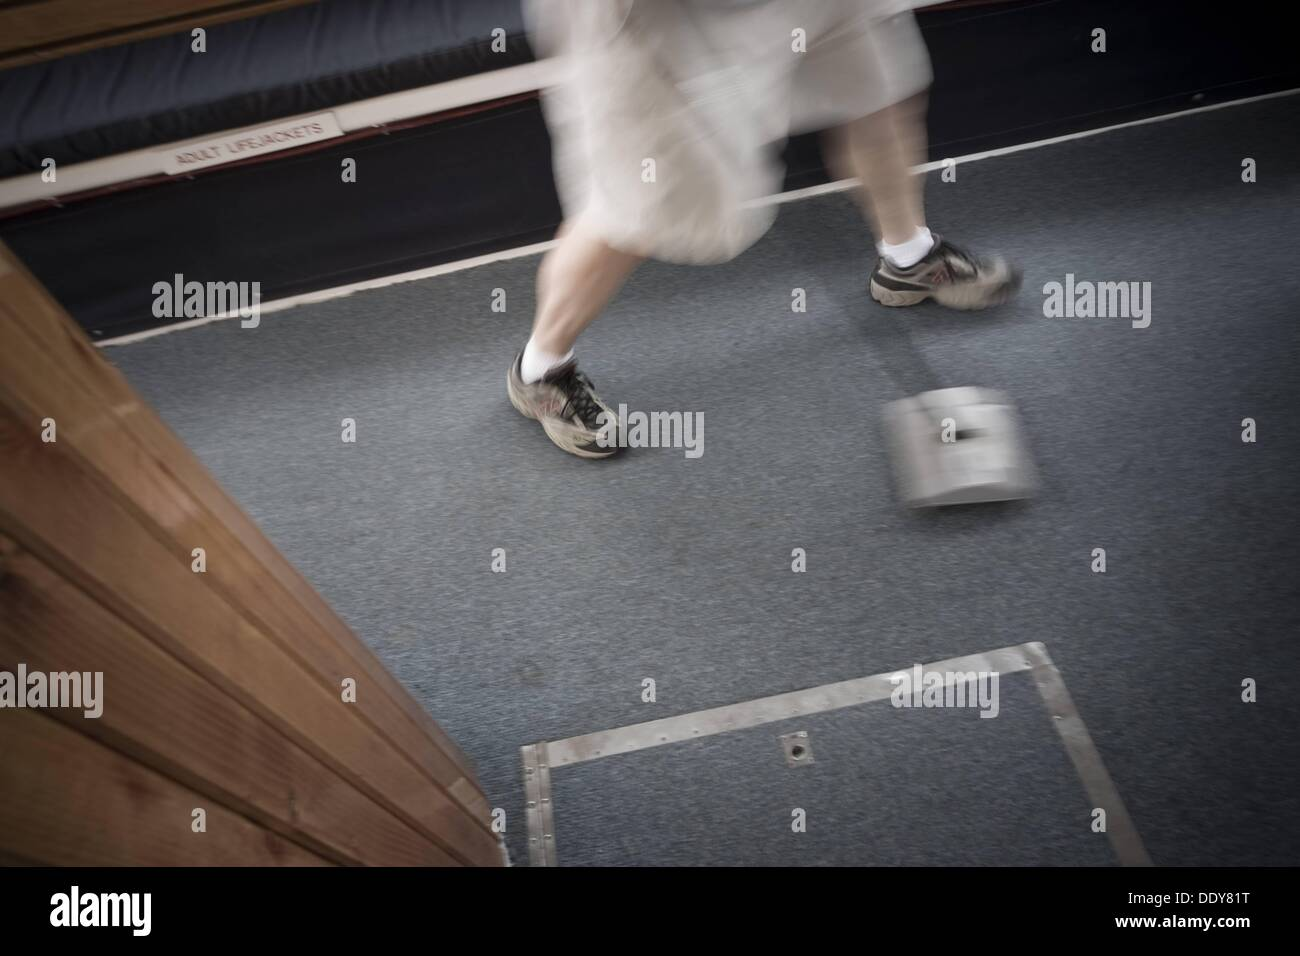 Carpet Sweeper Stock Photos Images Alamy Diagram Parts List For Model 1960 Bissellparts Wetcarpetcleaner Close Up Of A Man Using Manual Image